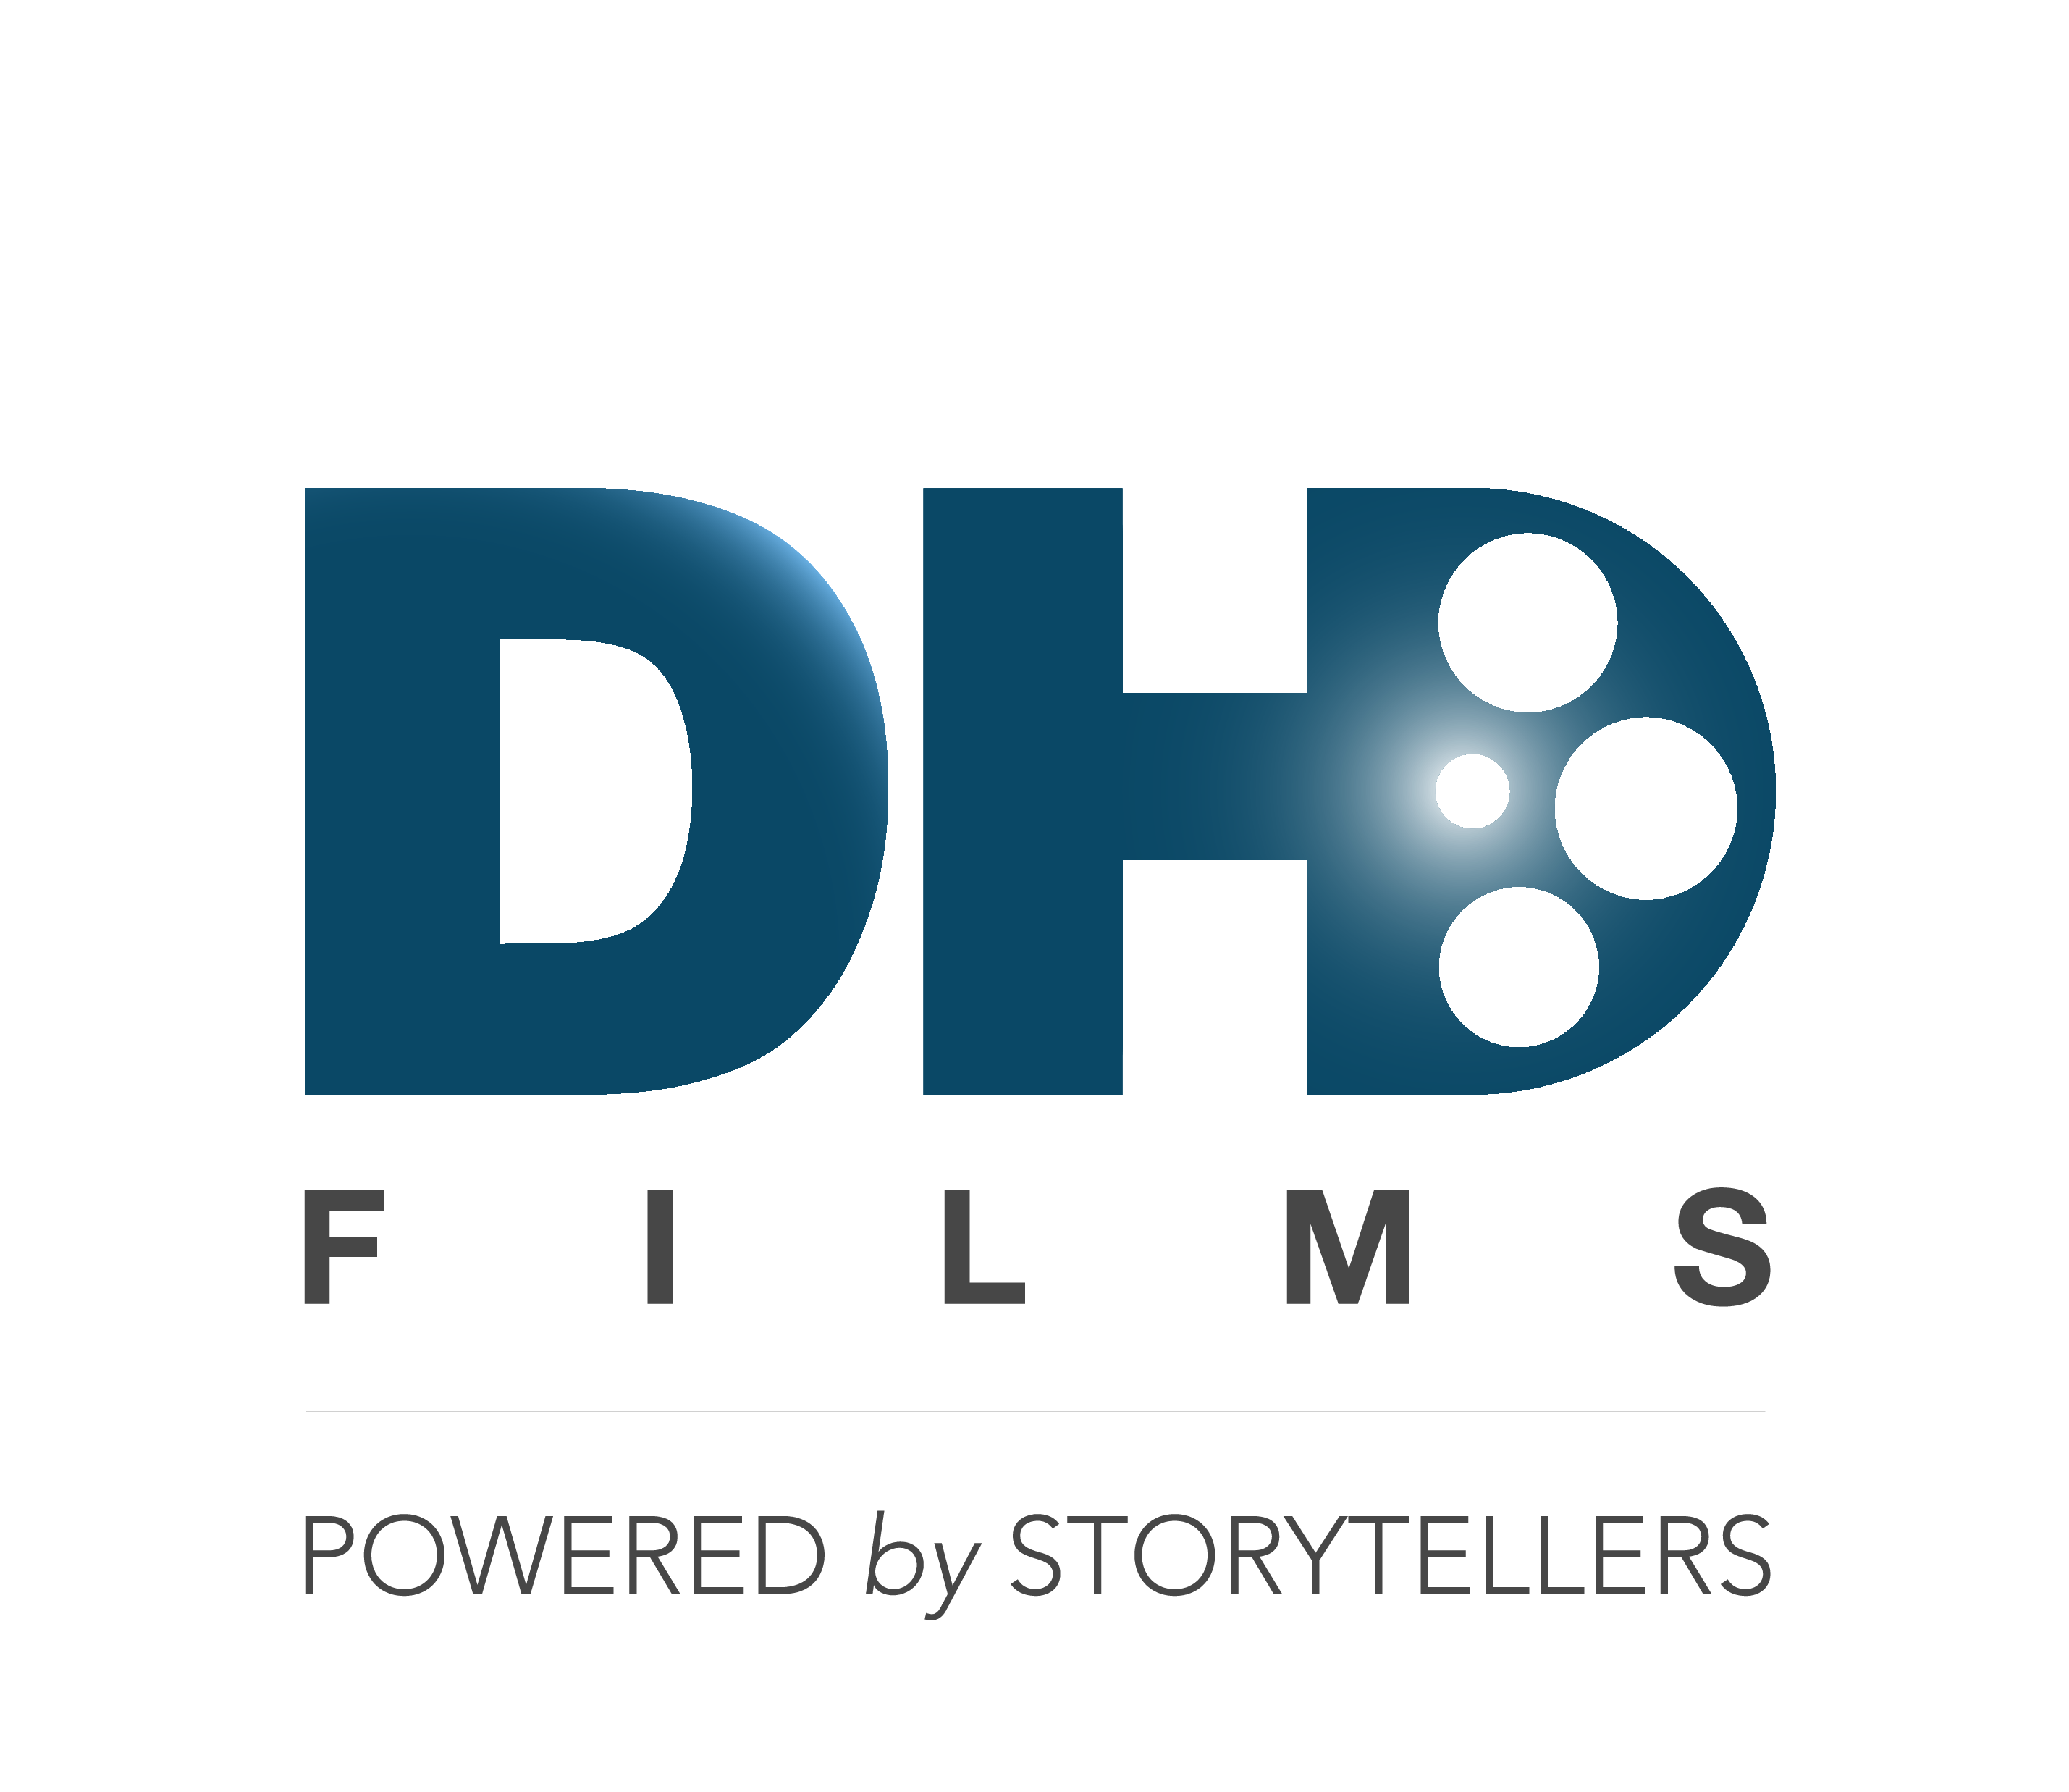 dhd films (1).png